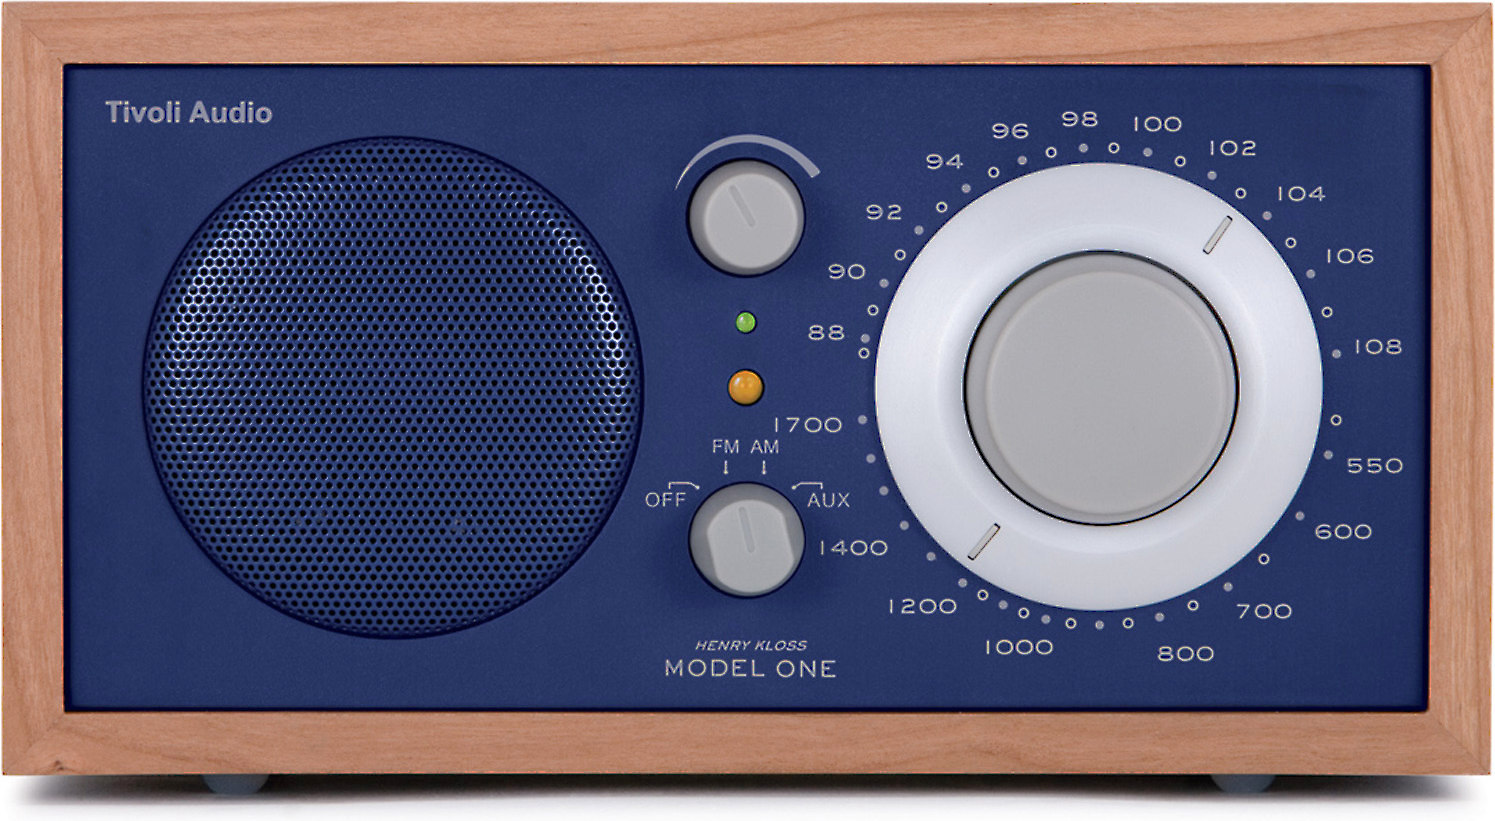 Tivoli Audio Model One Alternative Tivoli Audio Model One Cherry Blue